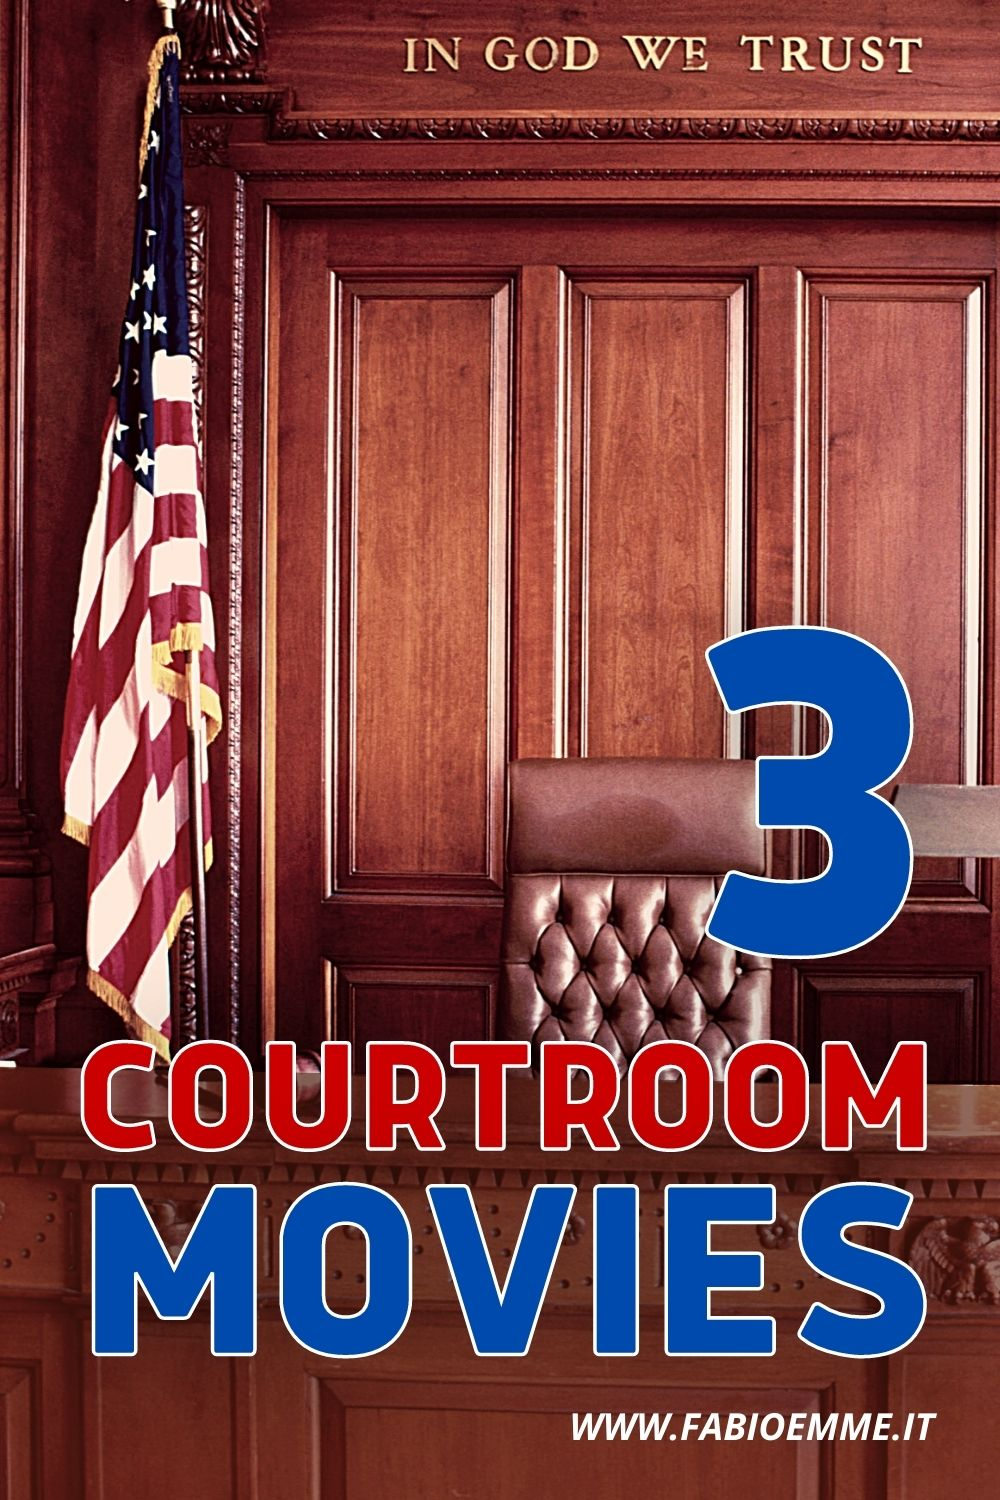 In real life, we ​​hope never end up in a Courtroom, but not sitting comfortably watching 3 Courtroom Movies you may have missed. #MOVIES